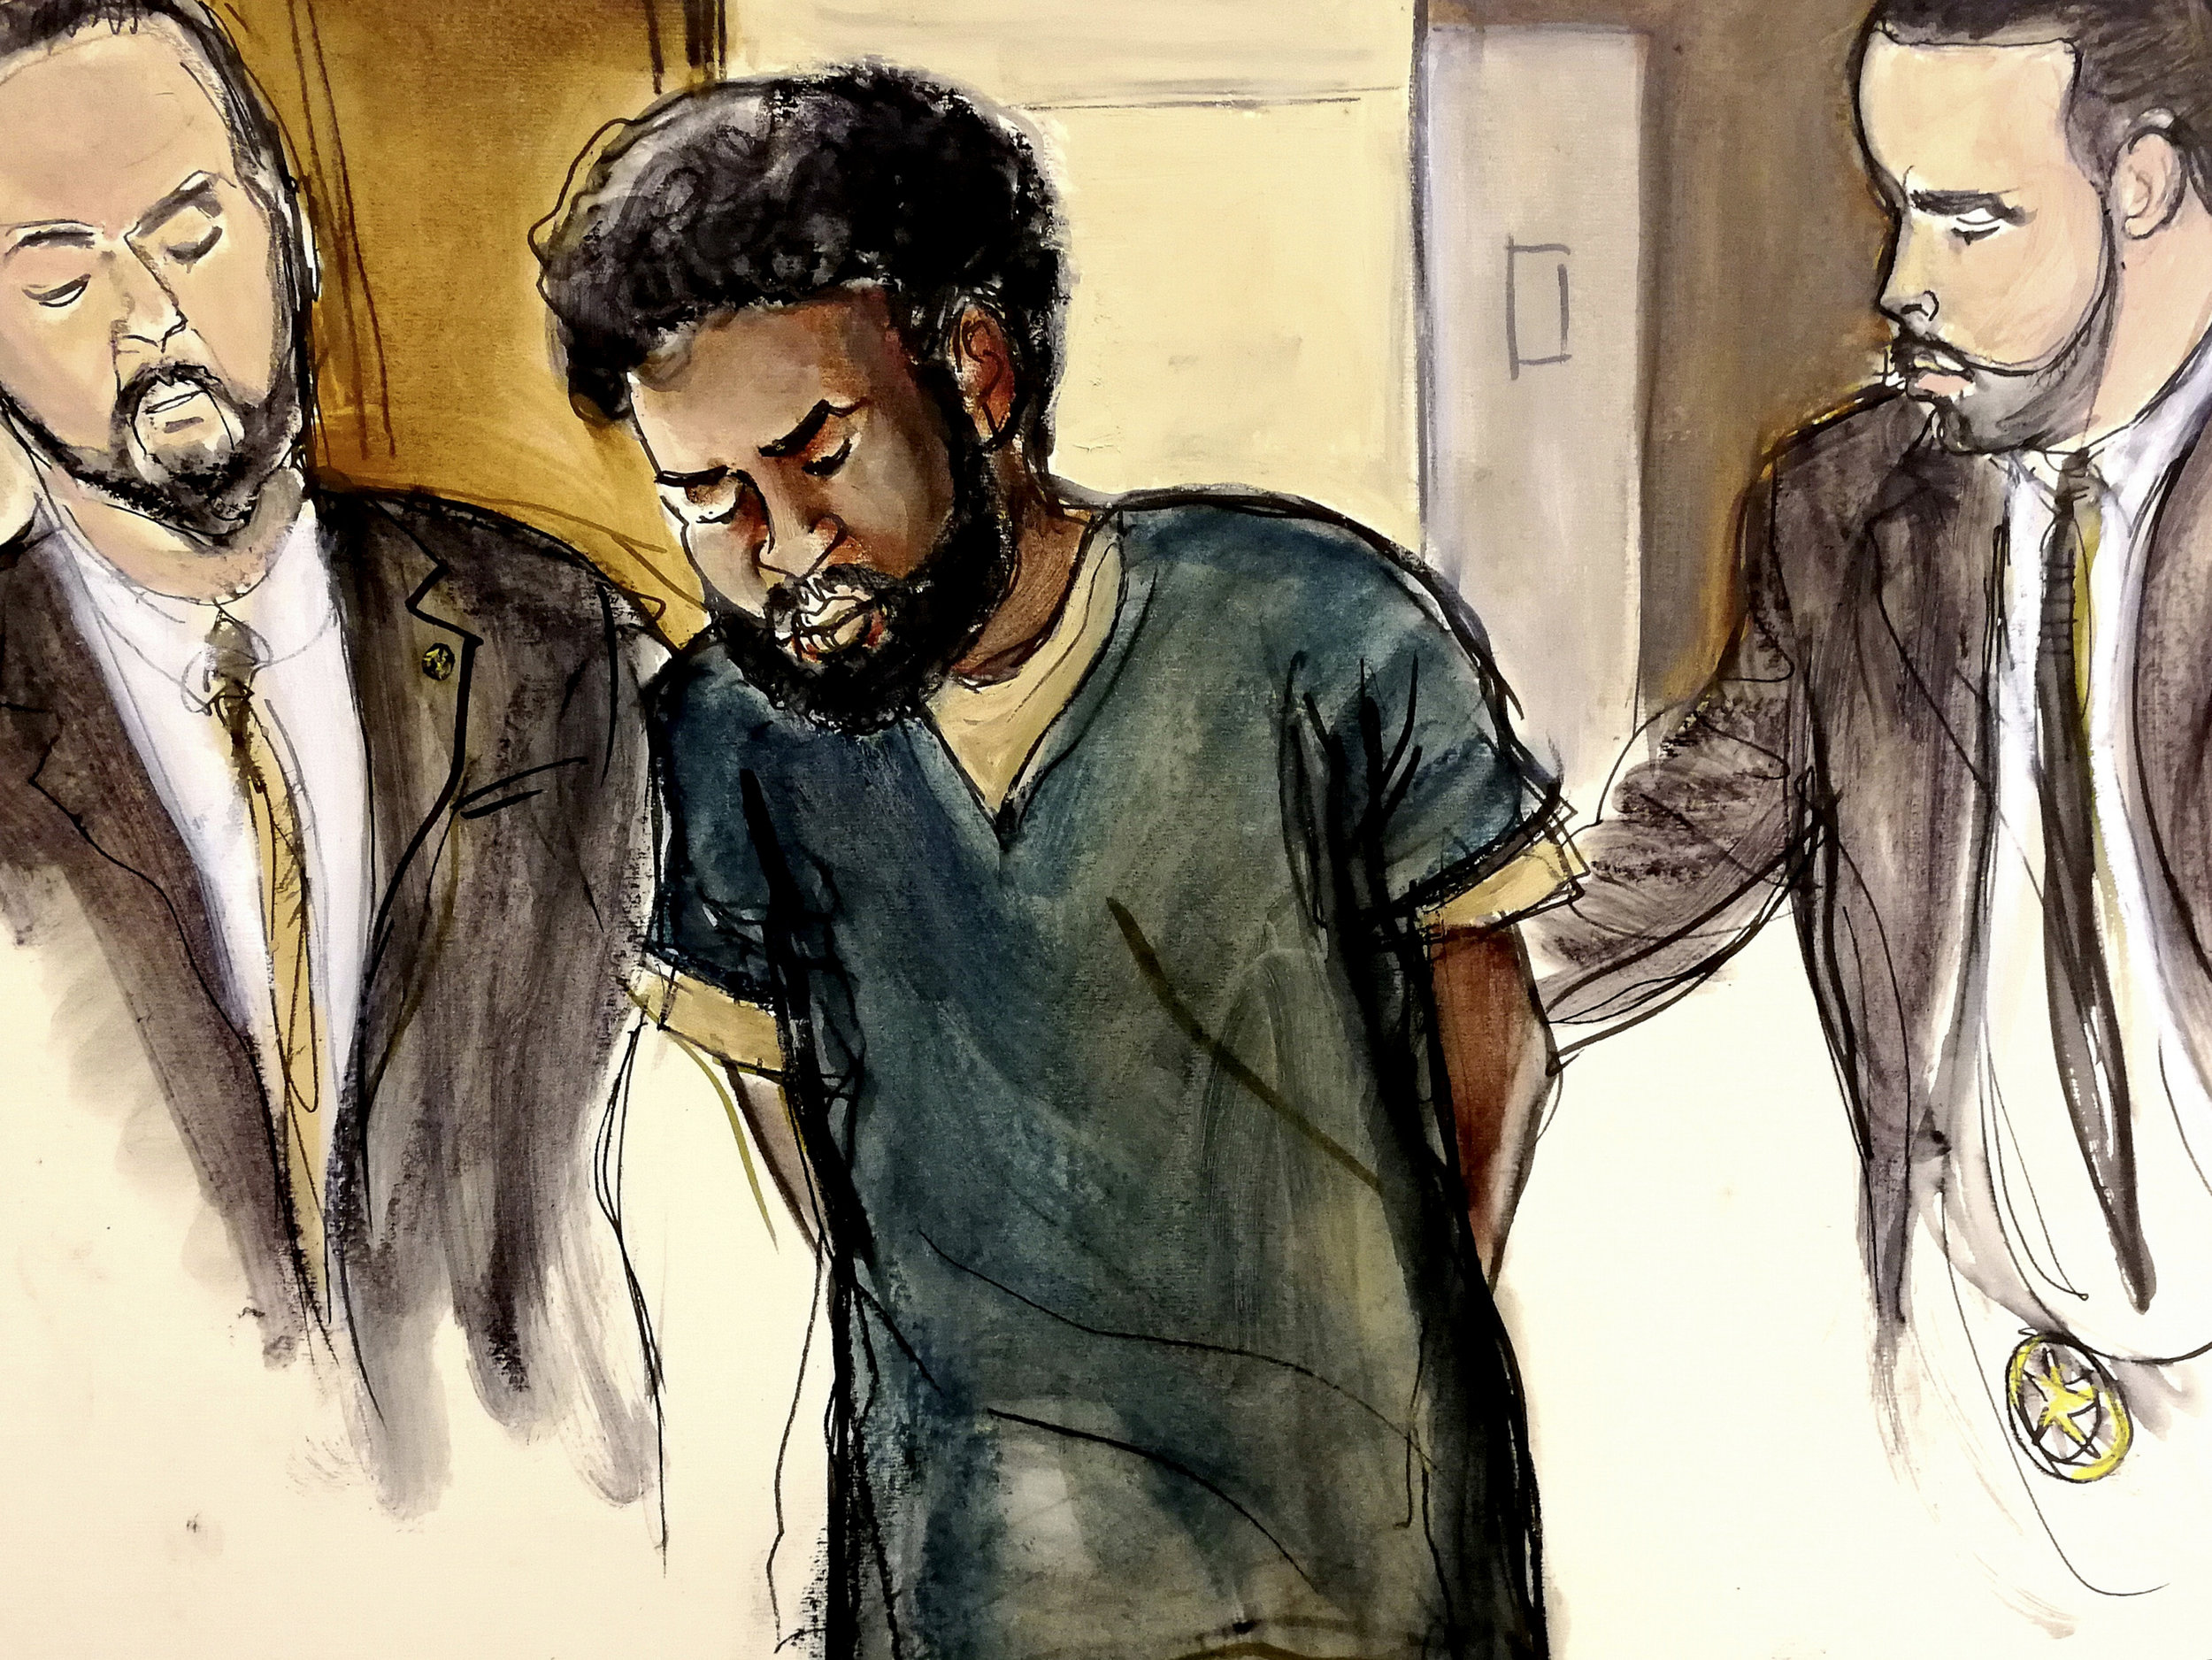 In this Jan. 11, 2018 courtroom drawing, U.S. Marshals escort Akayed Ullah, center, into court in Manhattan for his arraignment on charges of setting off a pipe bomb in a Manhattan subway corridor at Time Square. Image by Elizabeth Williams via AP File.